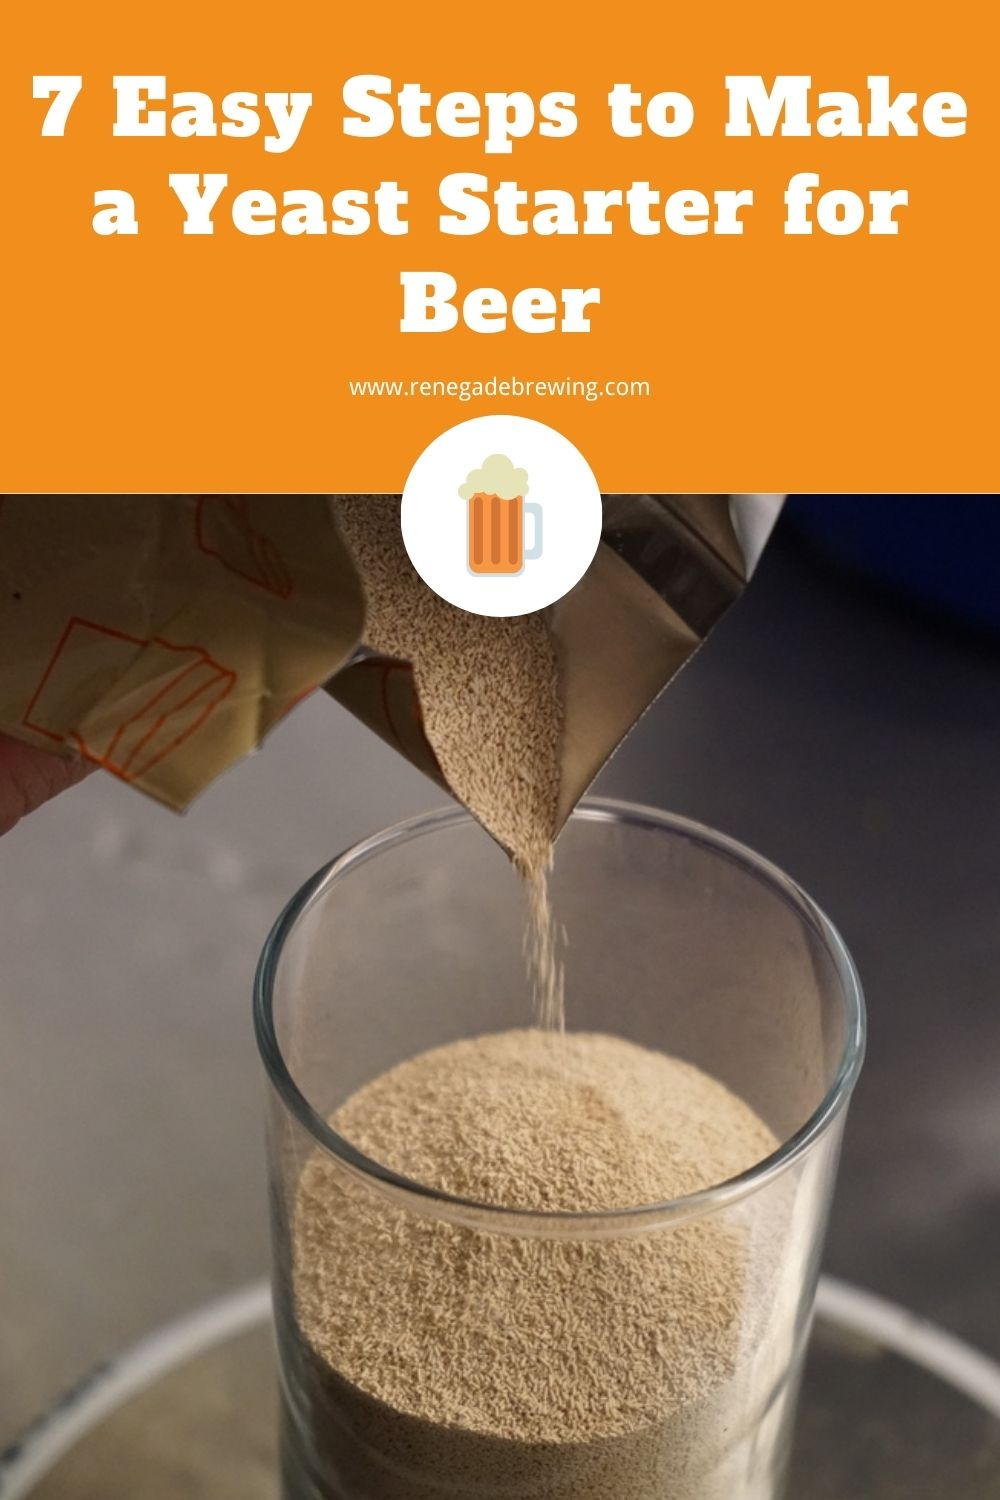 7 Easy Steps to Make a Yeast Starter for Beer 1